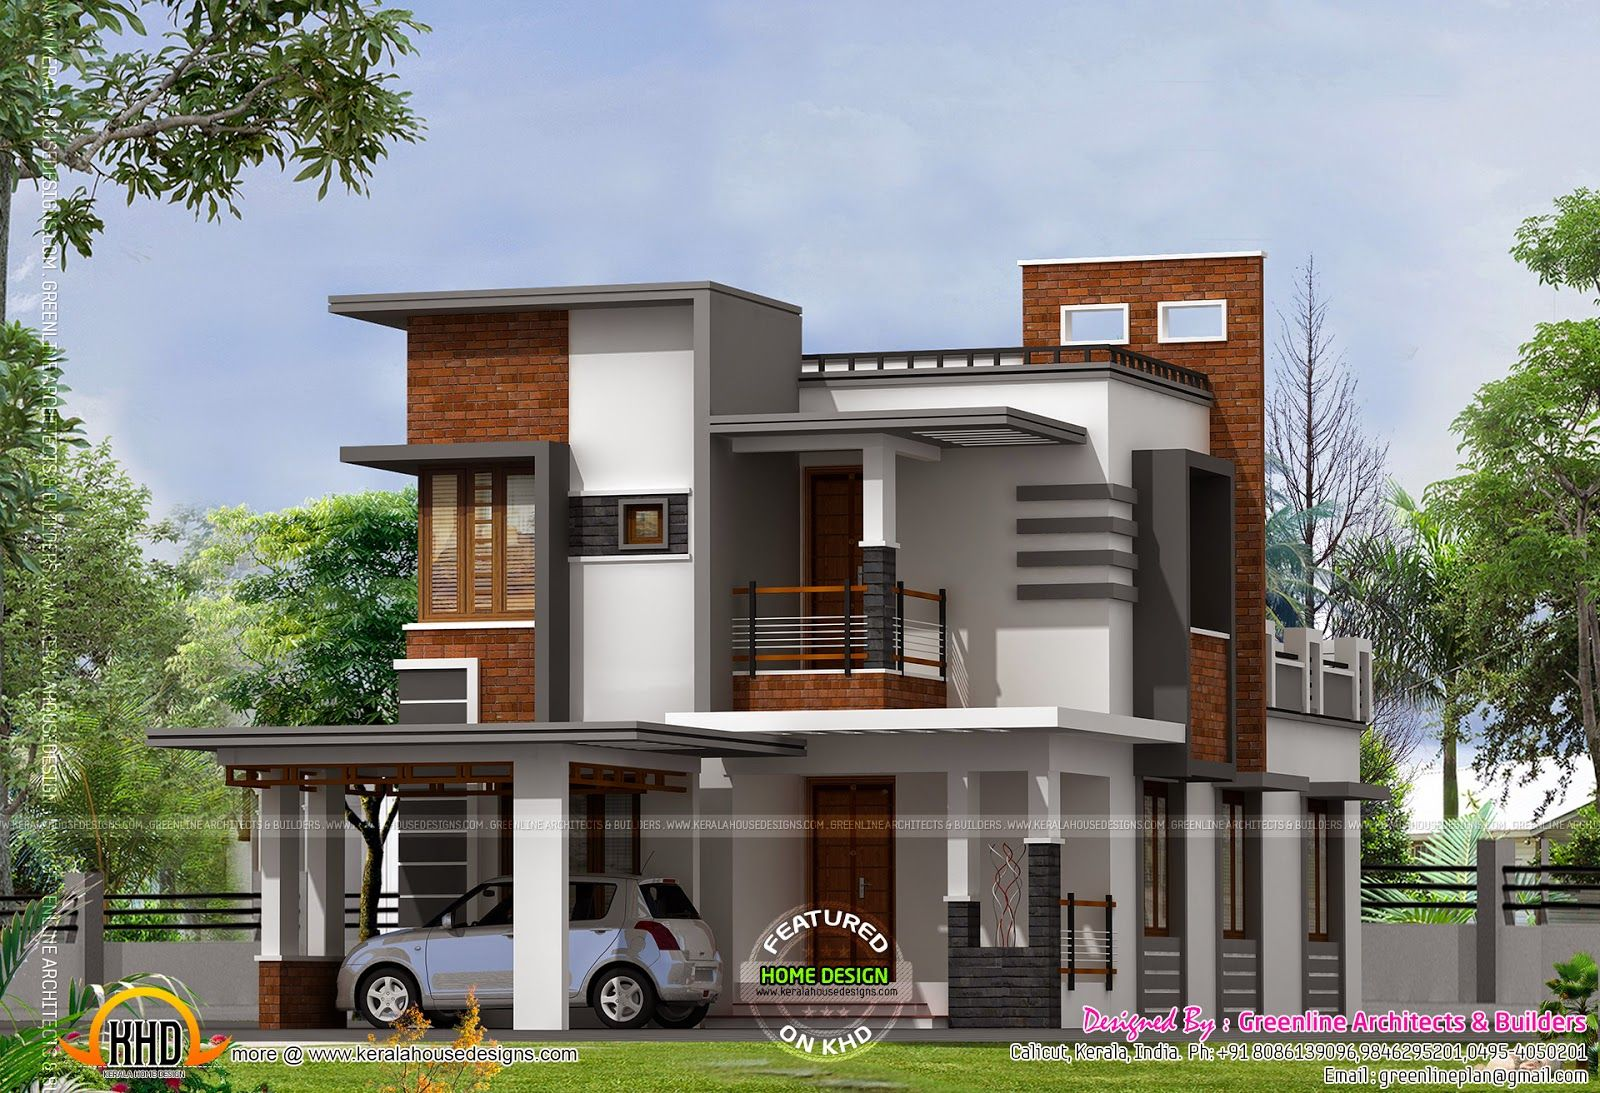 Low Cost Contemporary House In 2020 Minimalist House Design Contemporary House Design Single Door Design